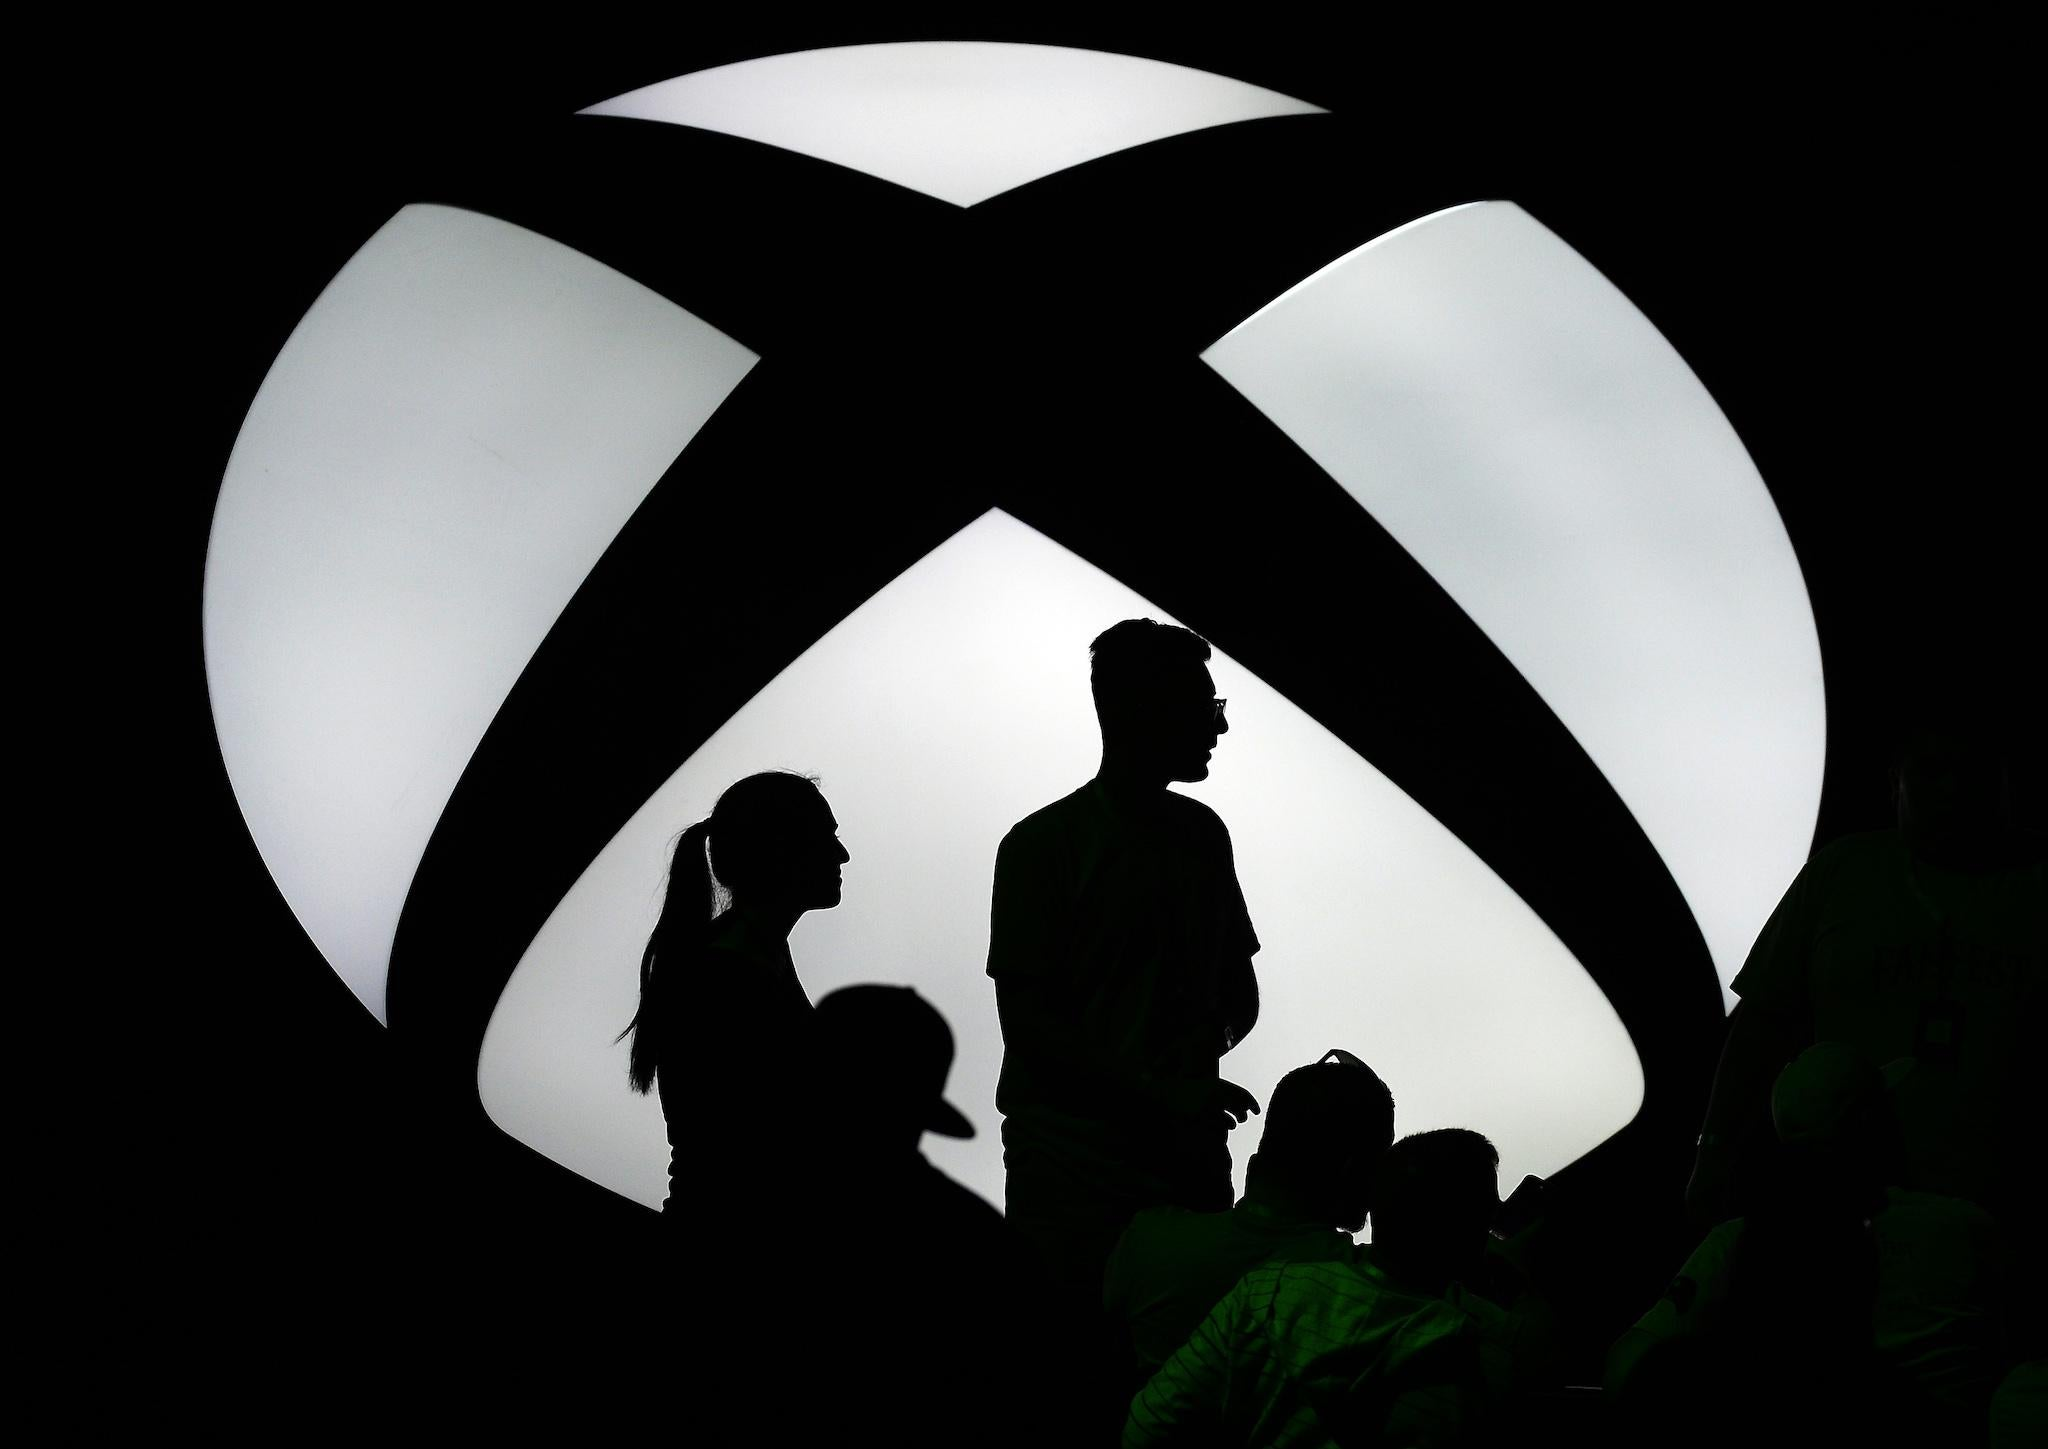 Xbox: New console with no disc drive to be released soon, rumours suggest